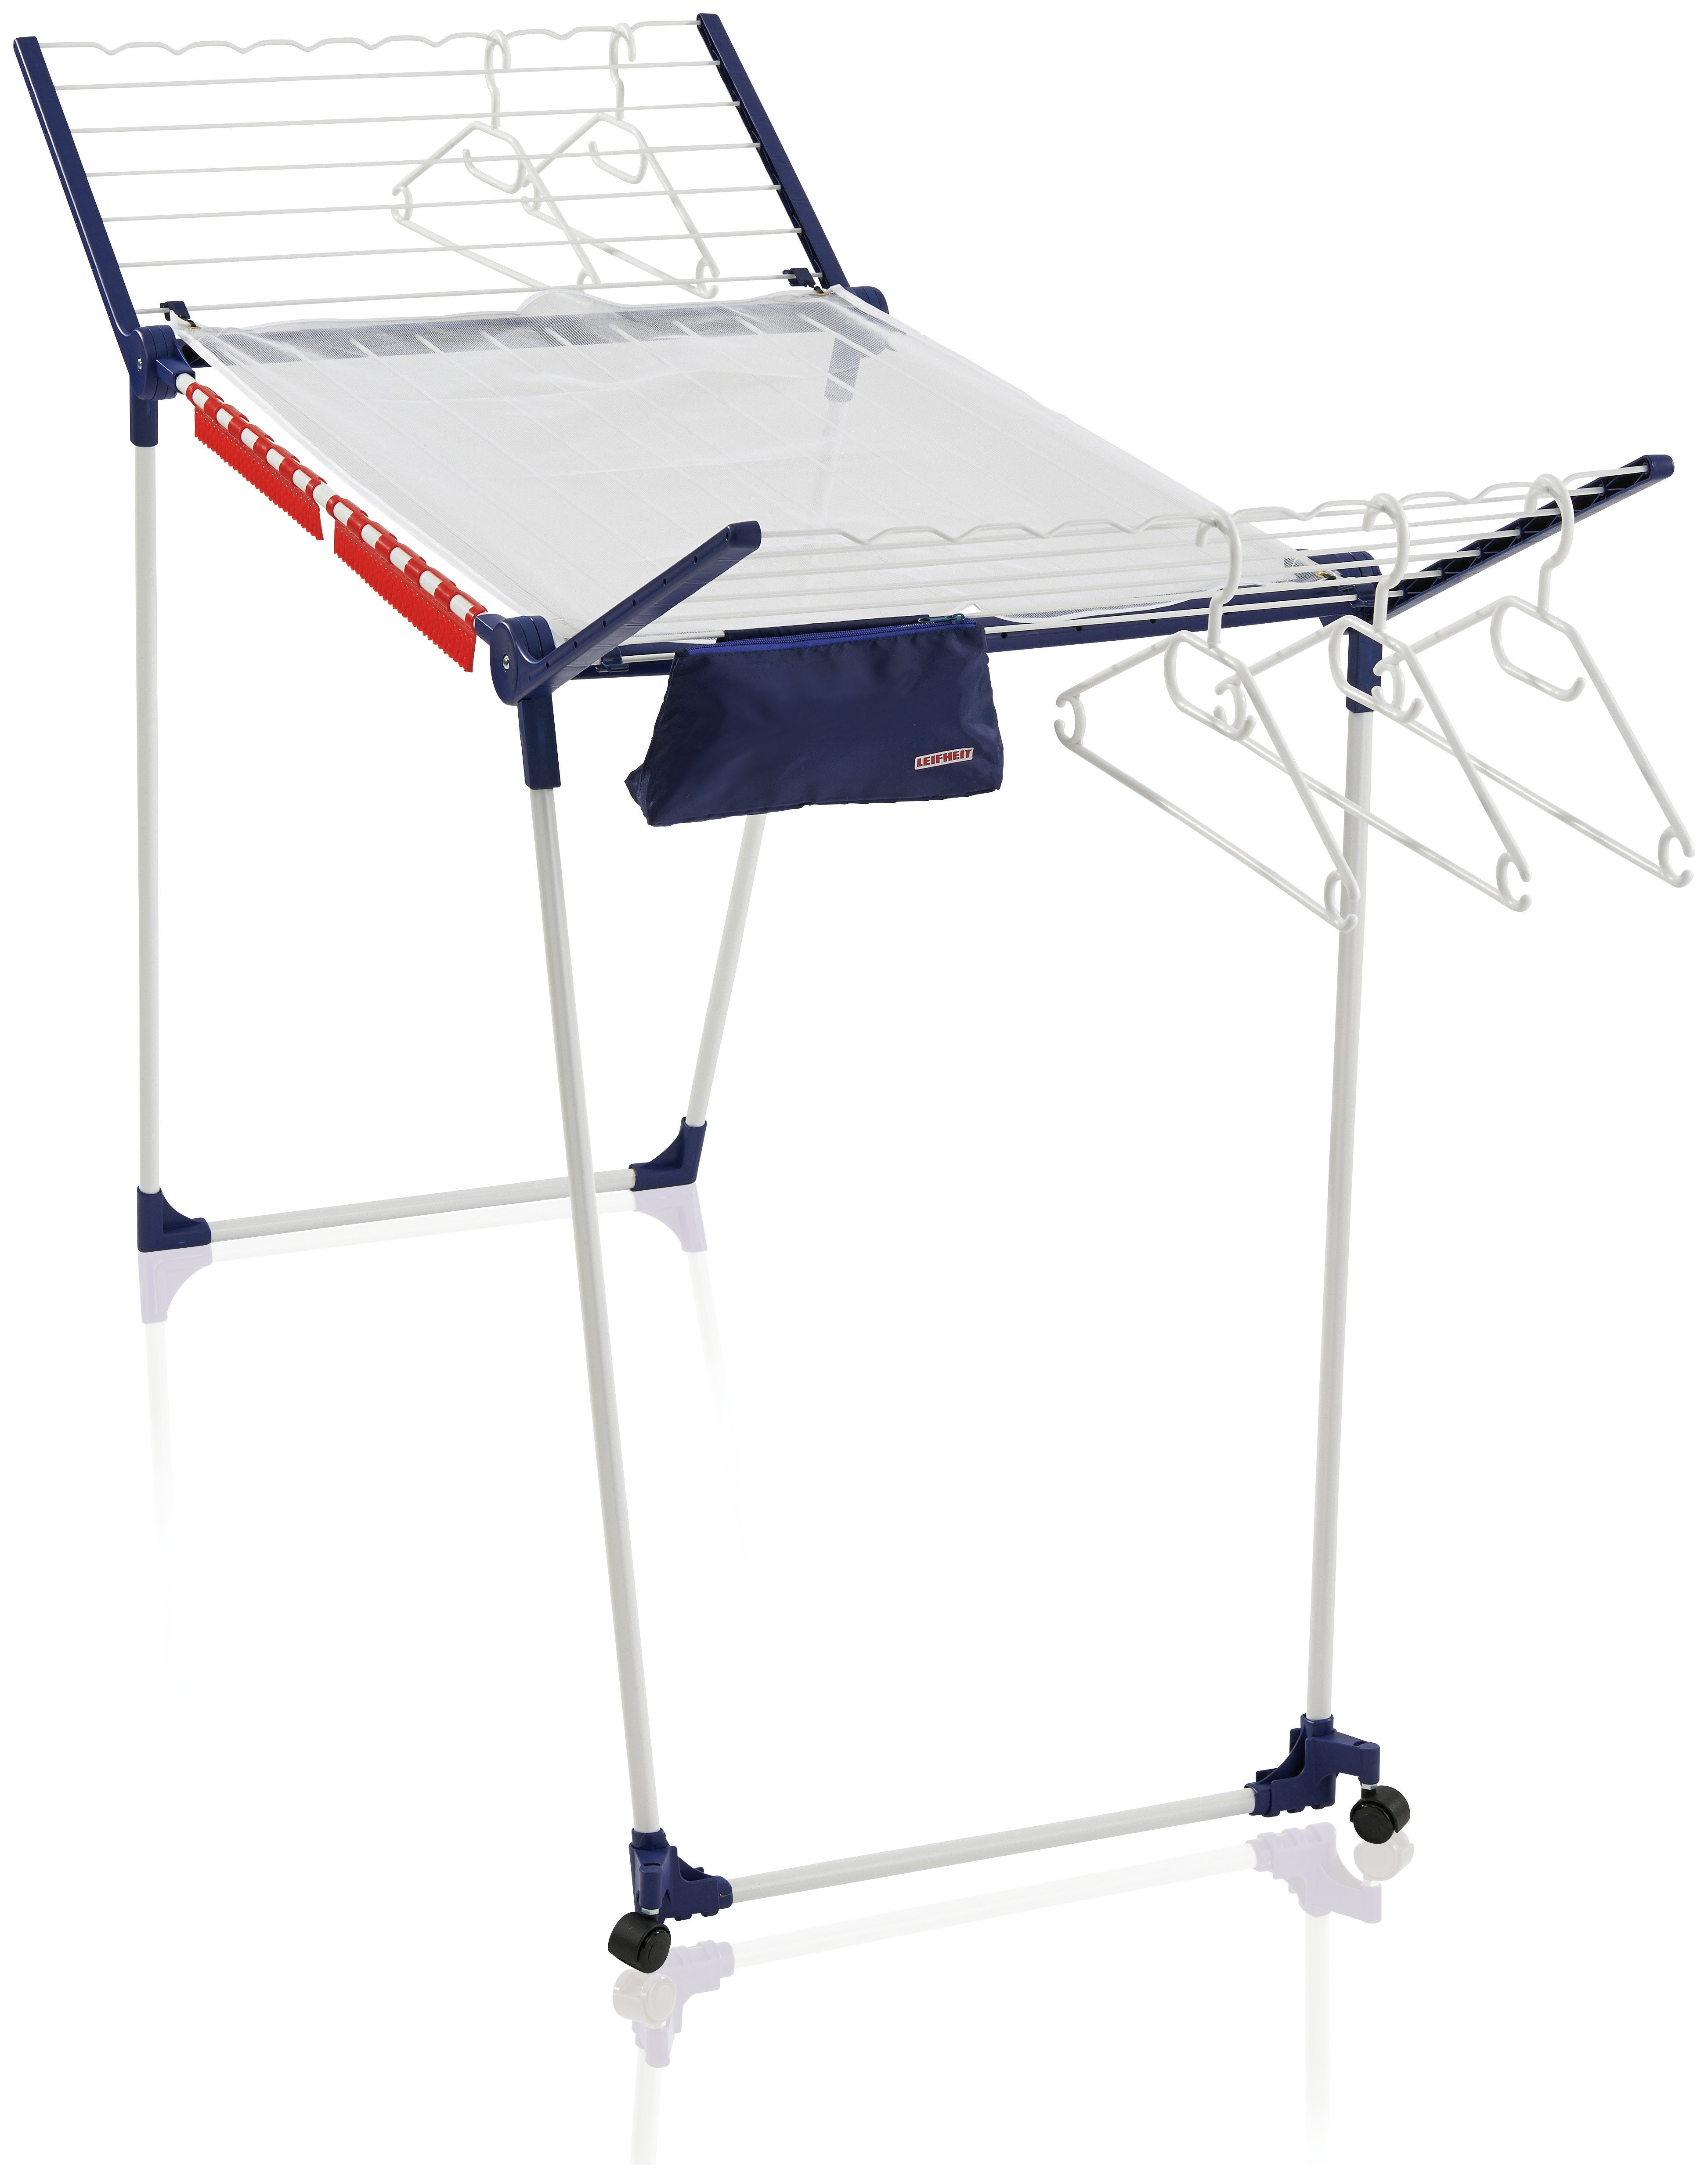 leifheit-pegasus-200-deluxe-20m-mobile-roller-airer